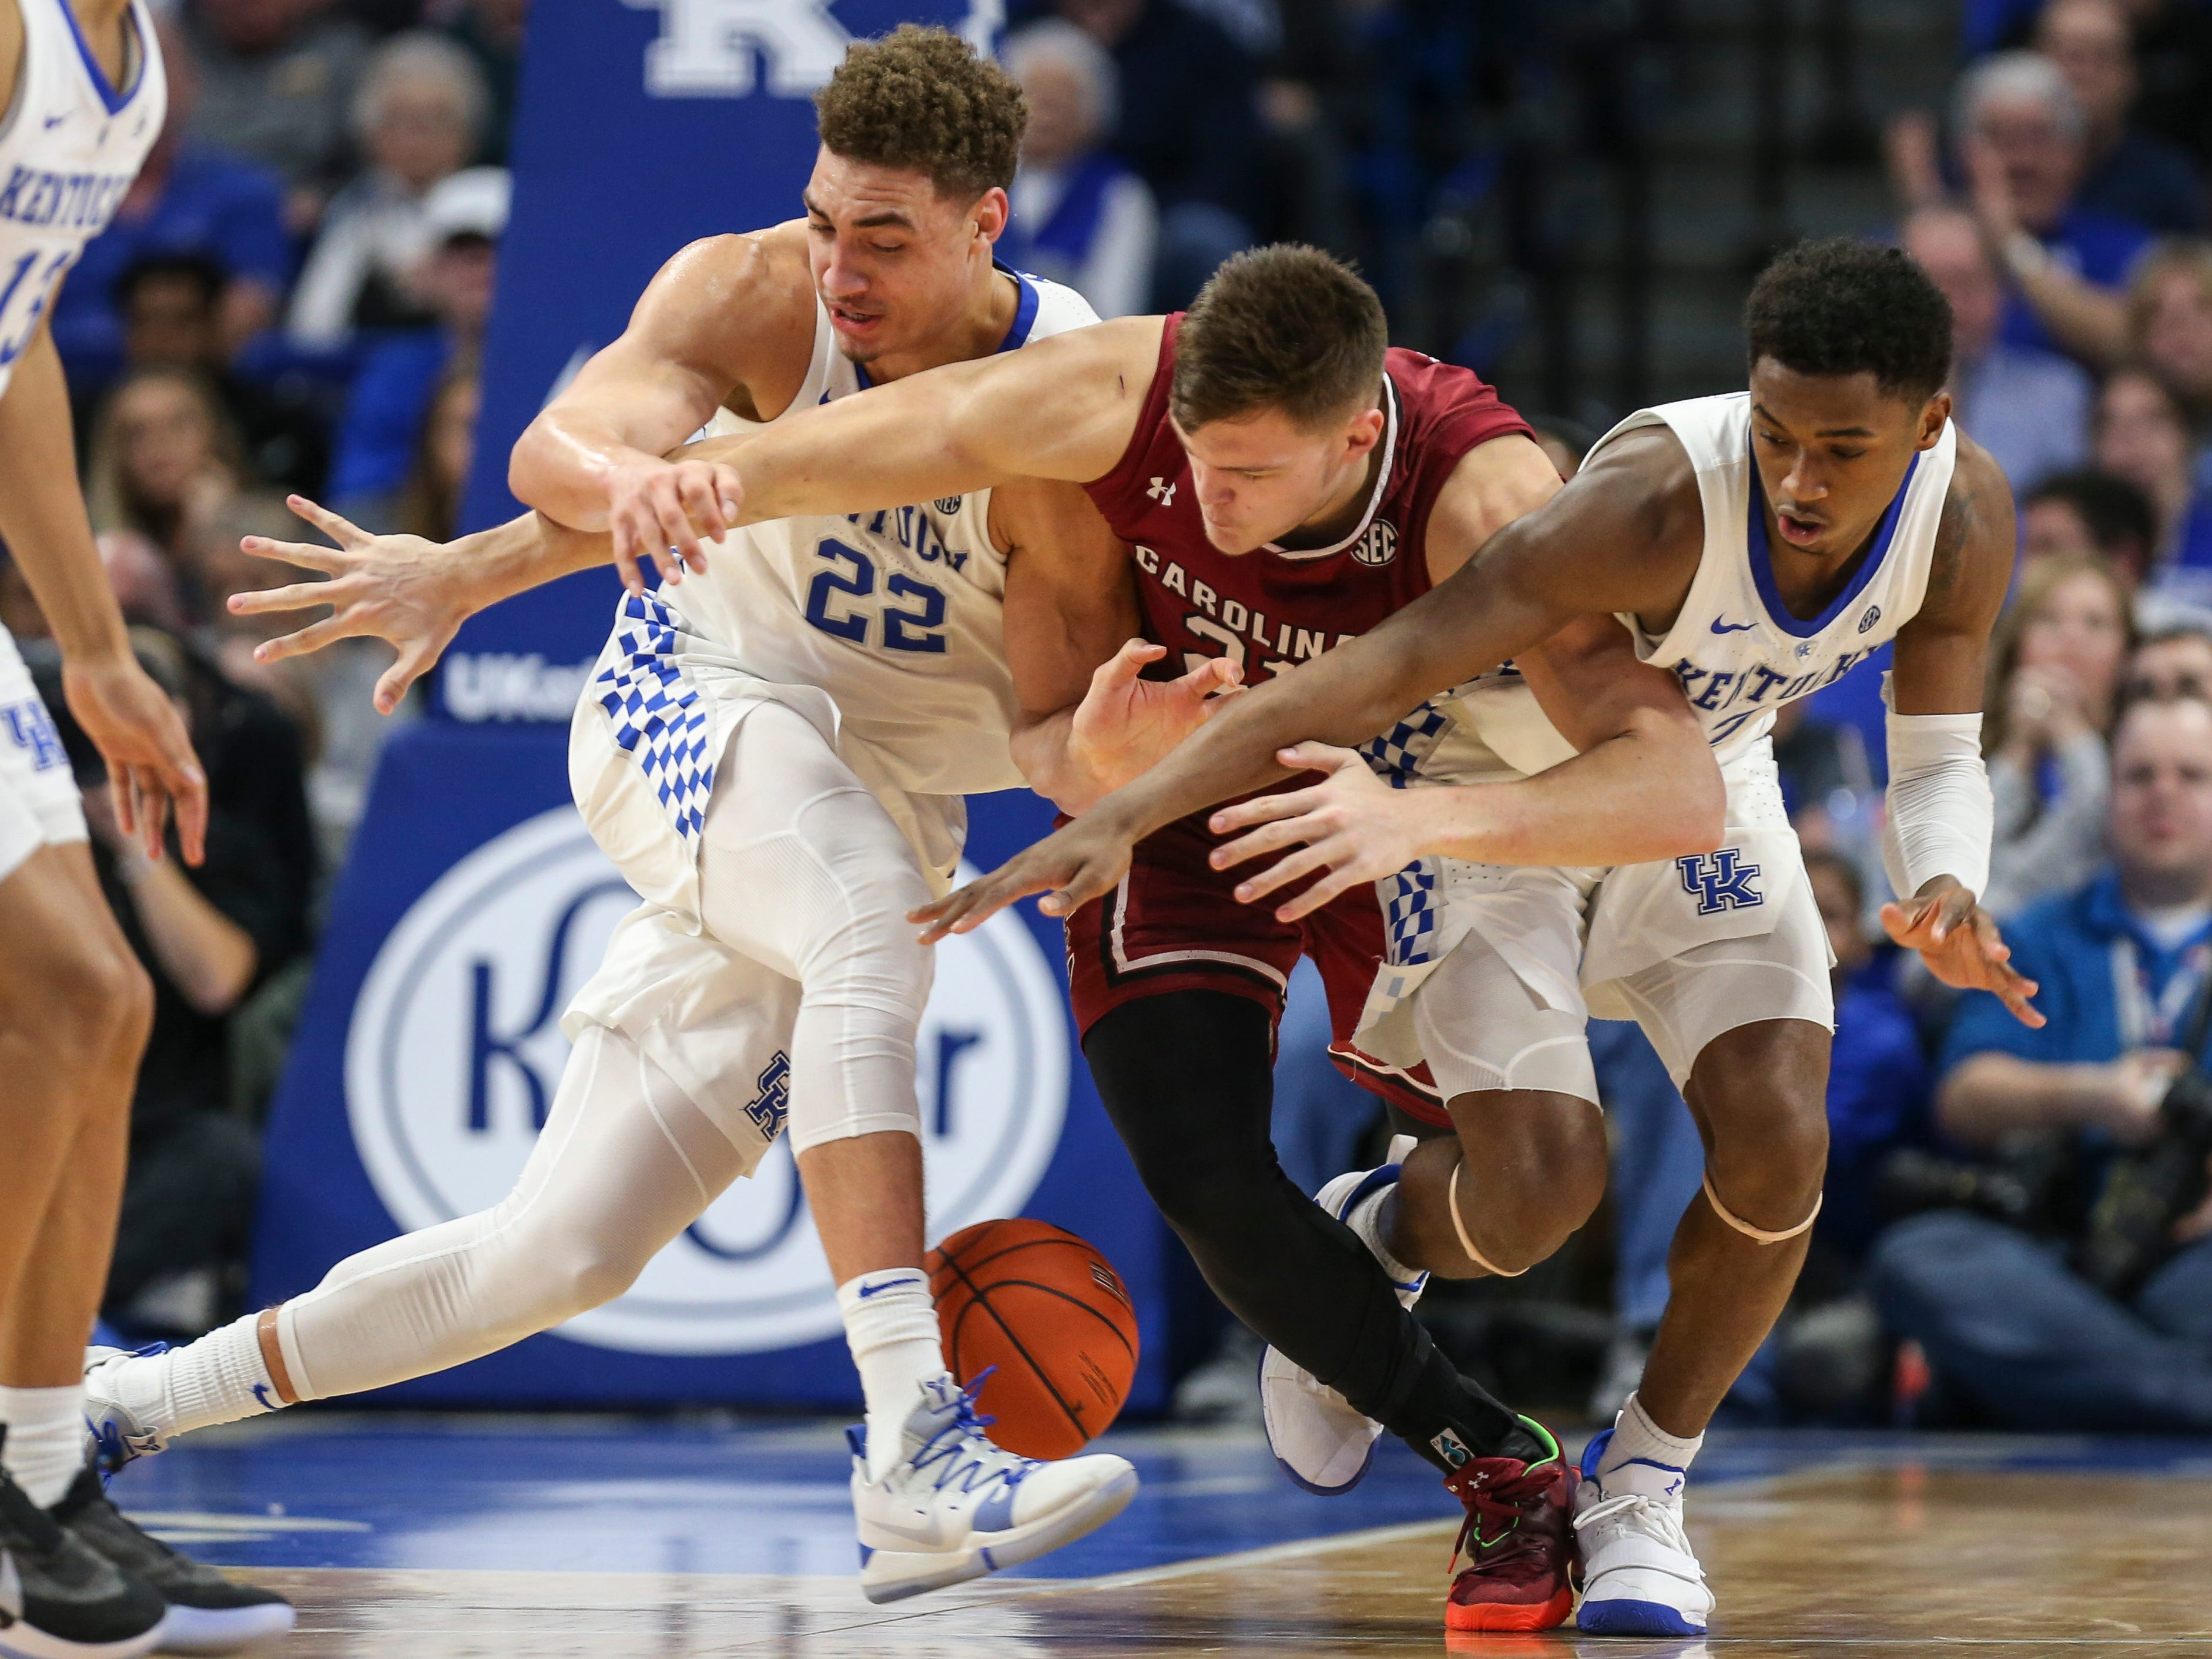 Kentucky's Reid Travis and Ashton Hagans pressured South Carolina's Maik Kotsar as the Wildcats cruised past the Gamecocks 76-48. UK had 50 rebounds to S. Carolina's 27. Feb. 5, 2019